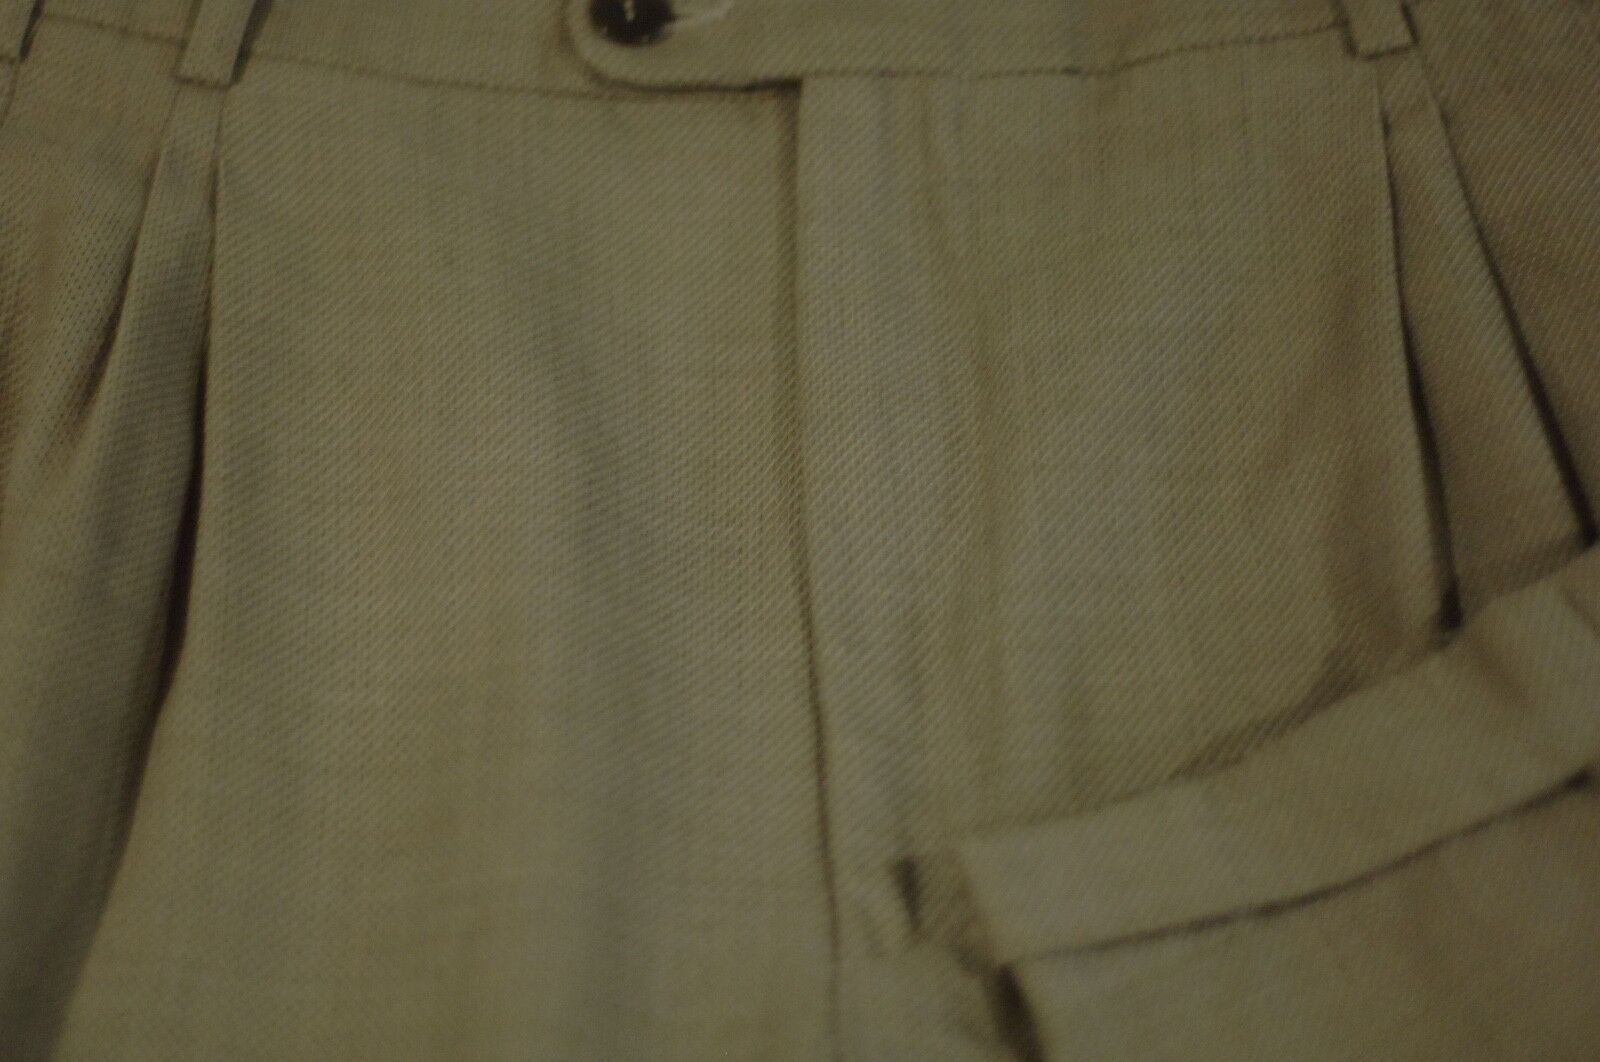 Zanella Men's Olive Green Dobby Weave Wool Pleated Dress Pants 34 x 26